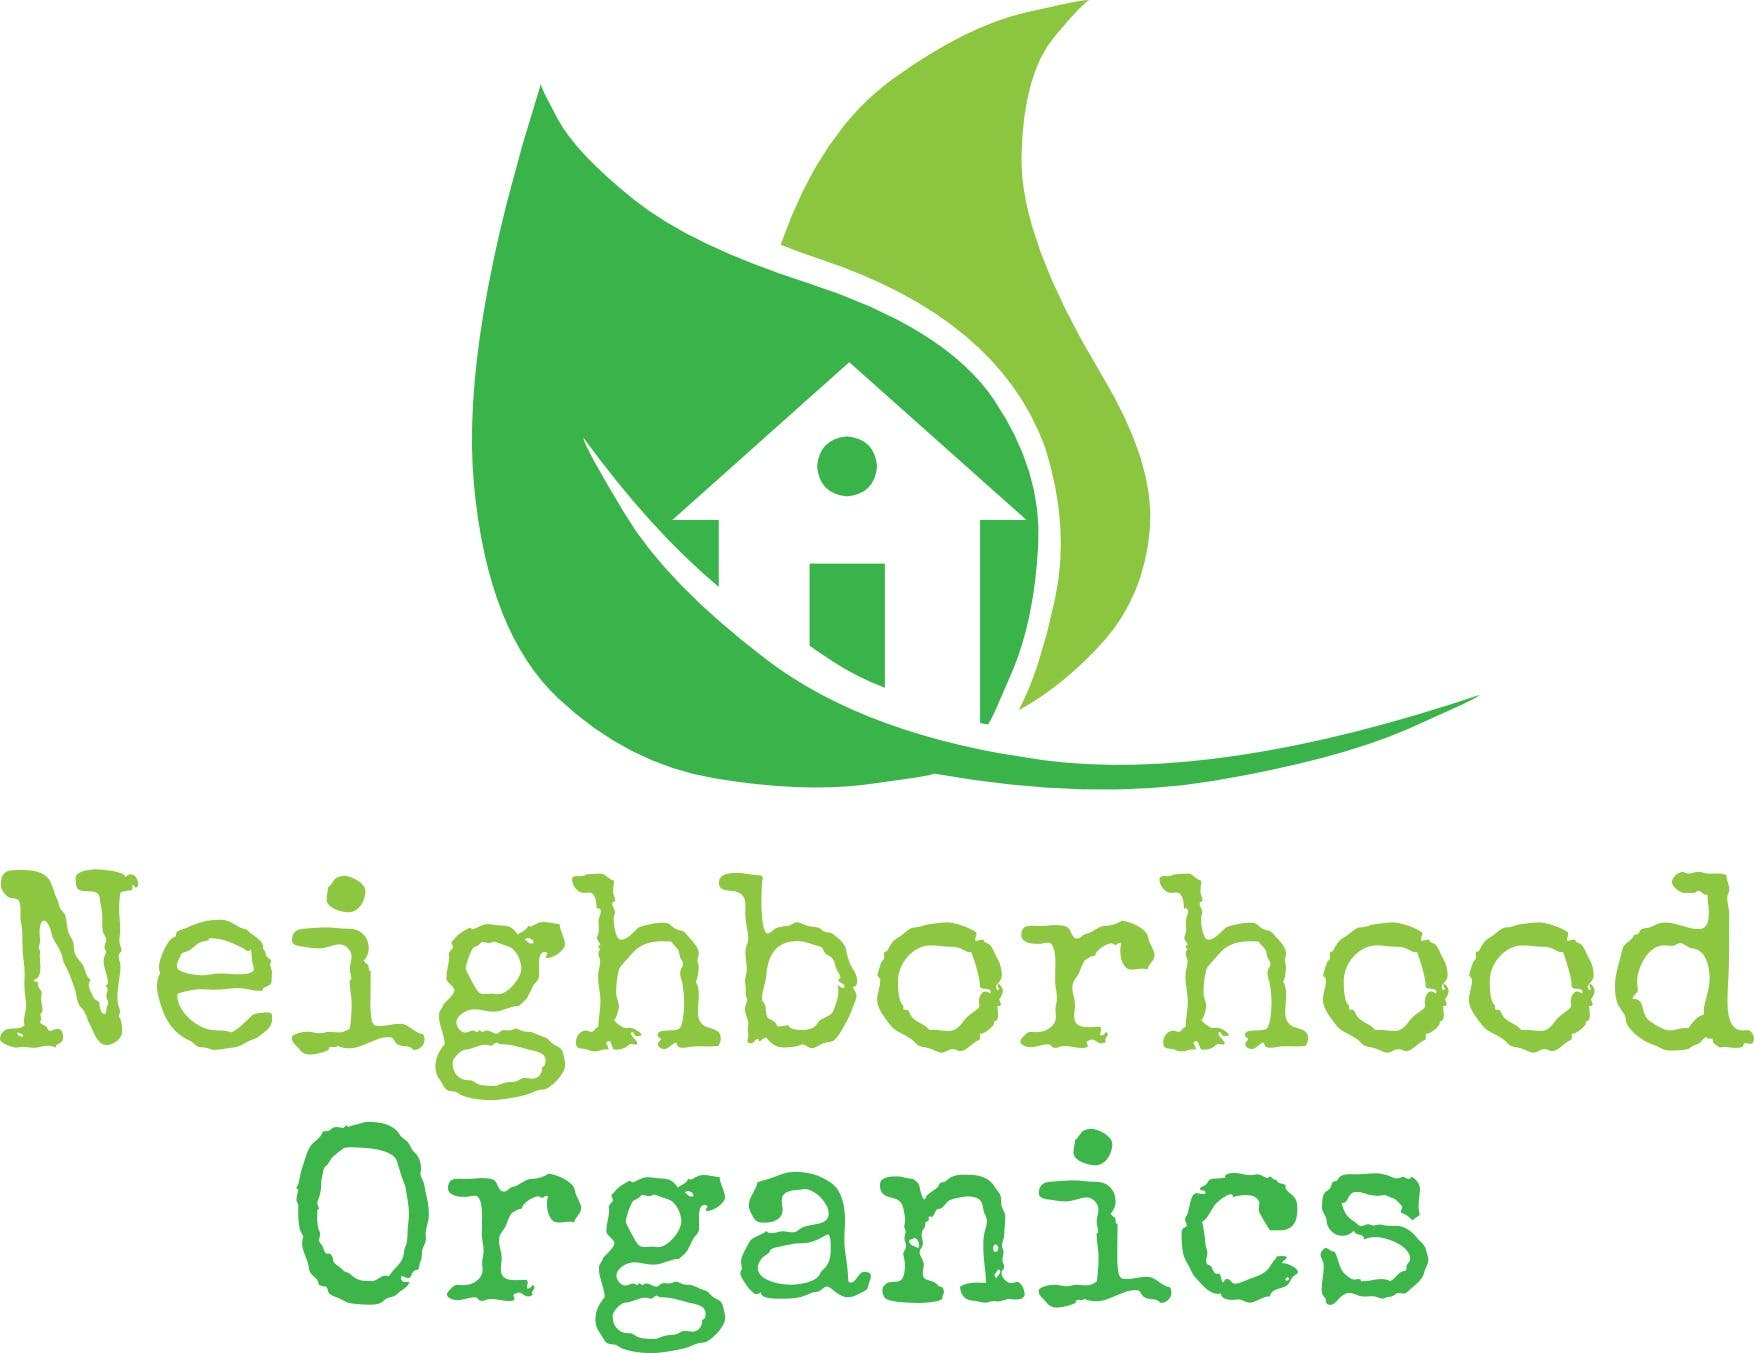 Neighborhood Organics